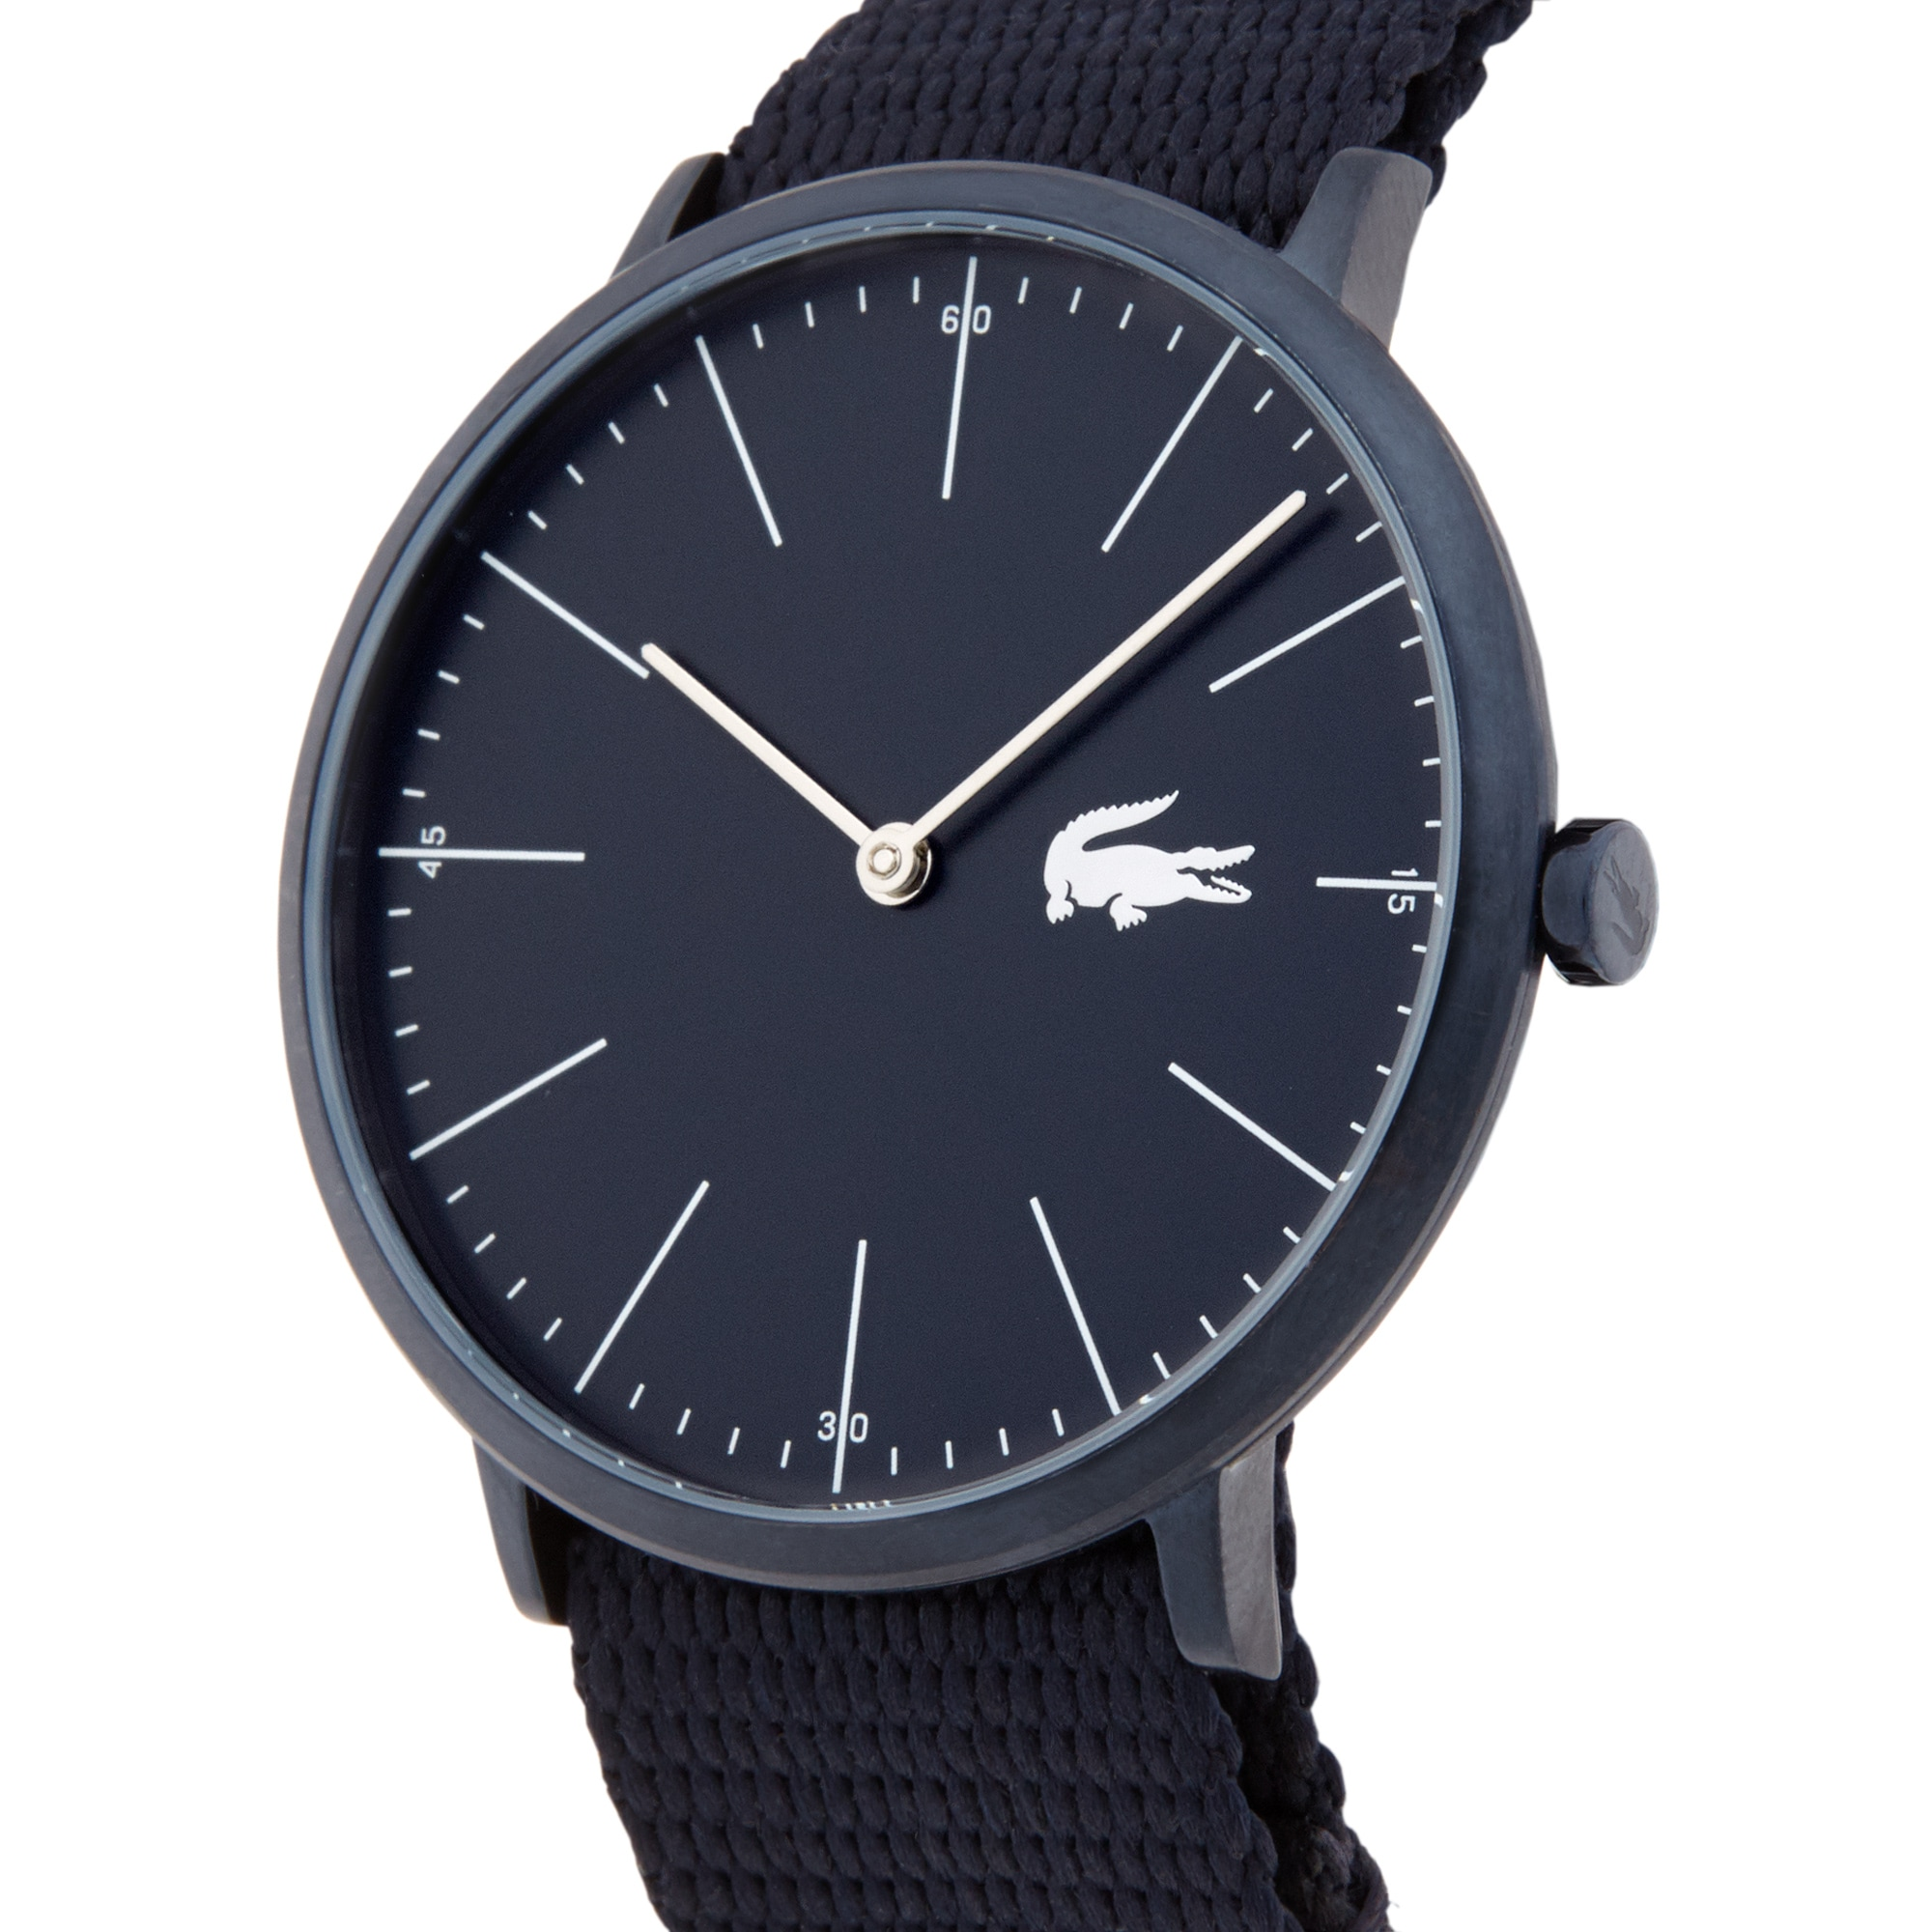 Men's Moon Ultra Slim Watch with Black Textile Strap